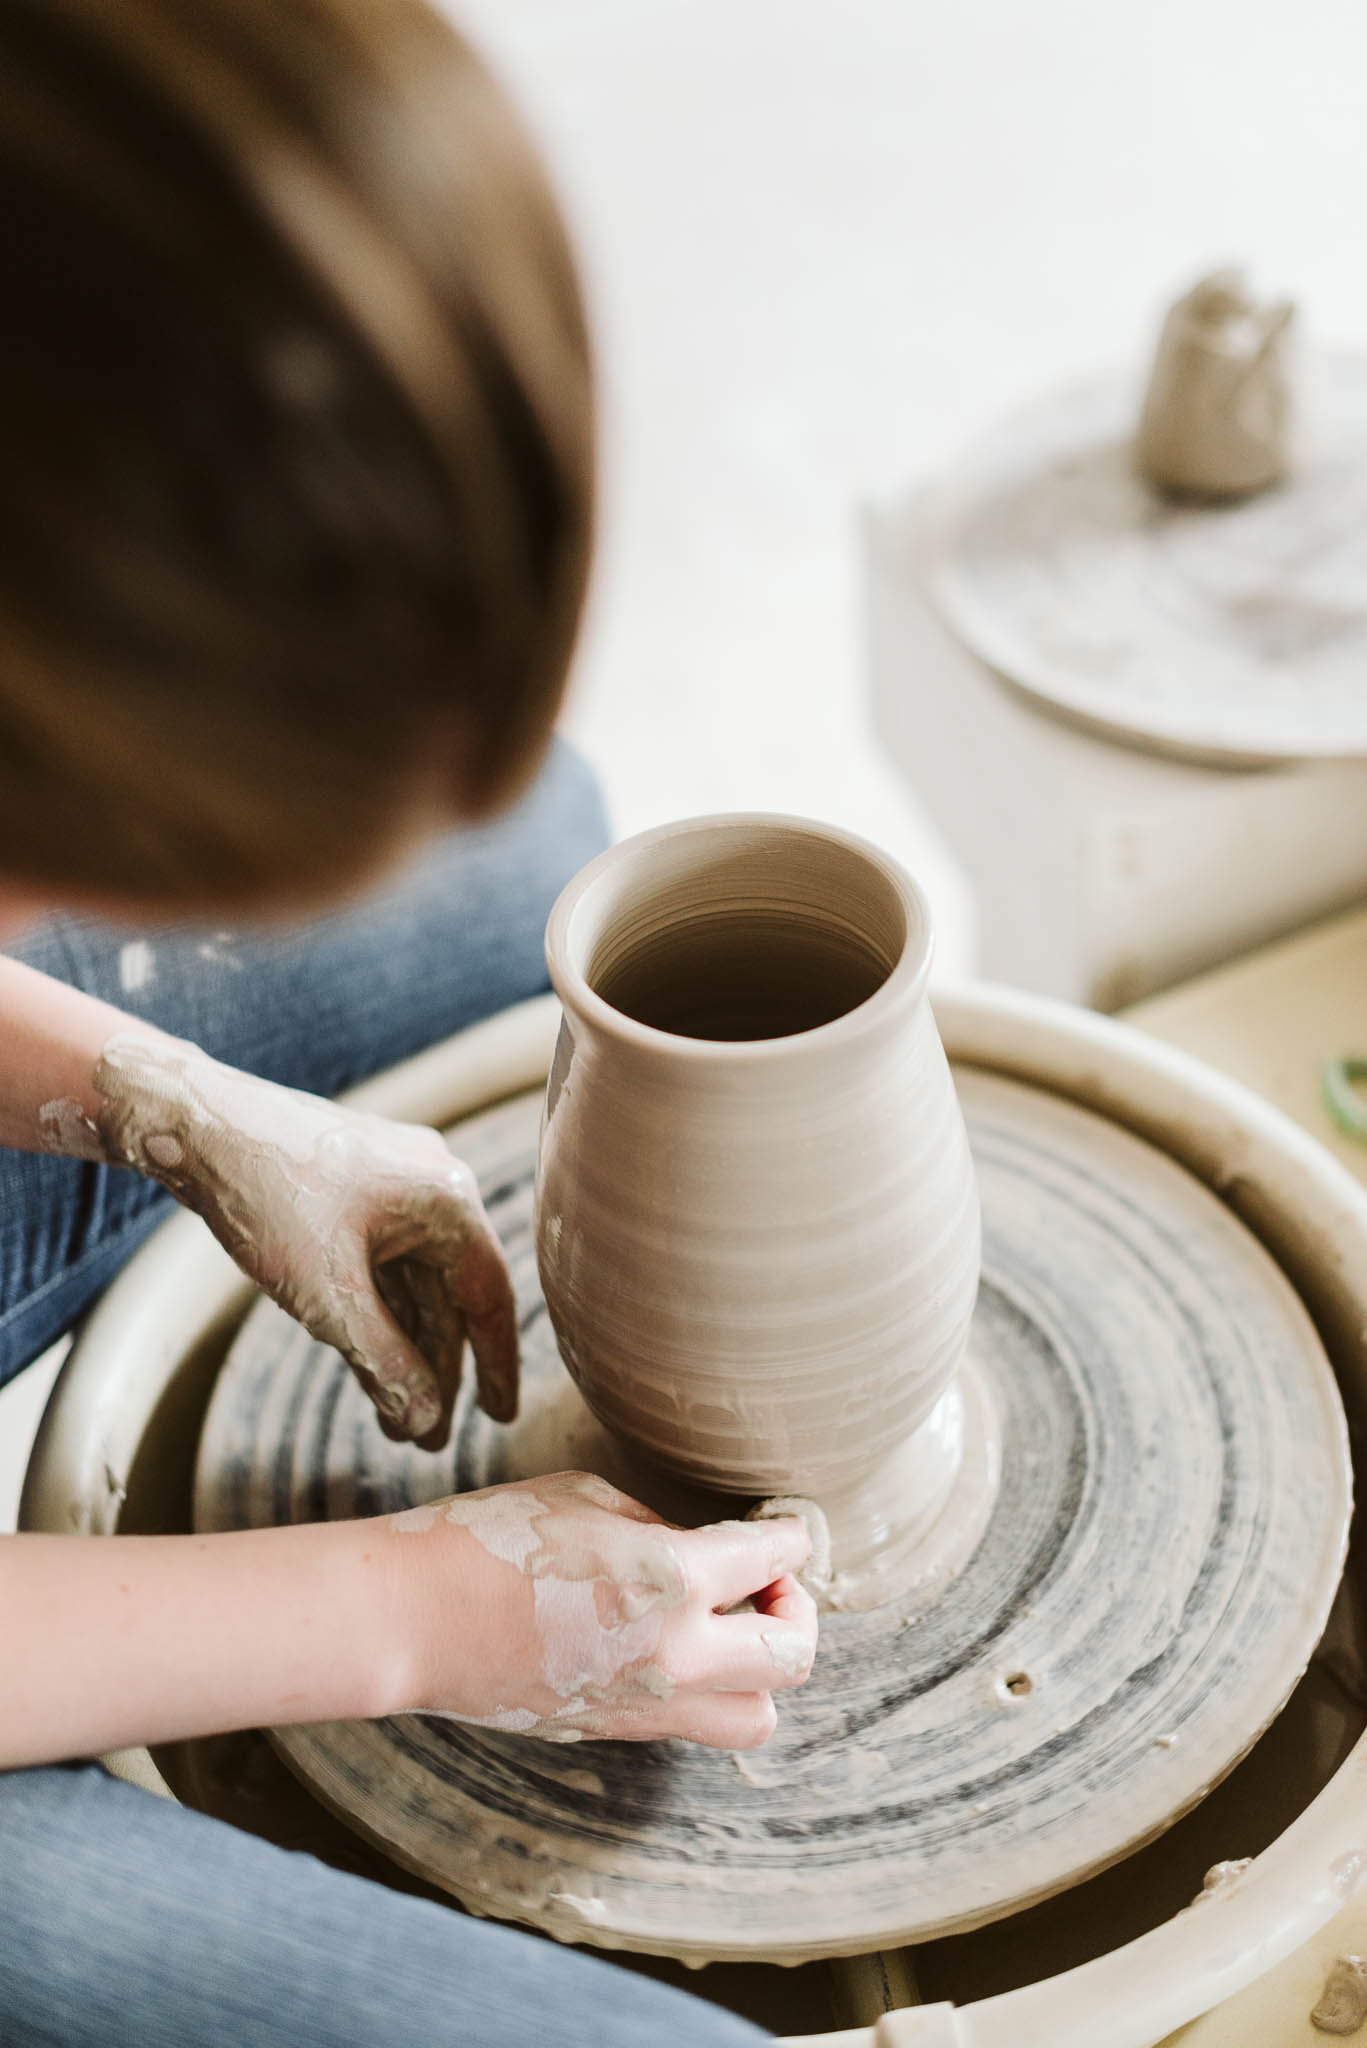 Kirsten-Smith-Photography-Reagan-Ashley-Pottery144.jpg